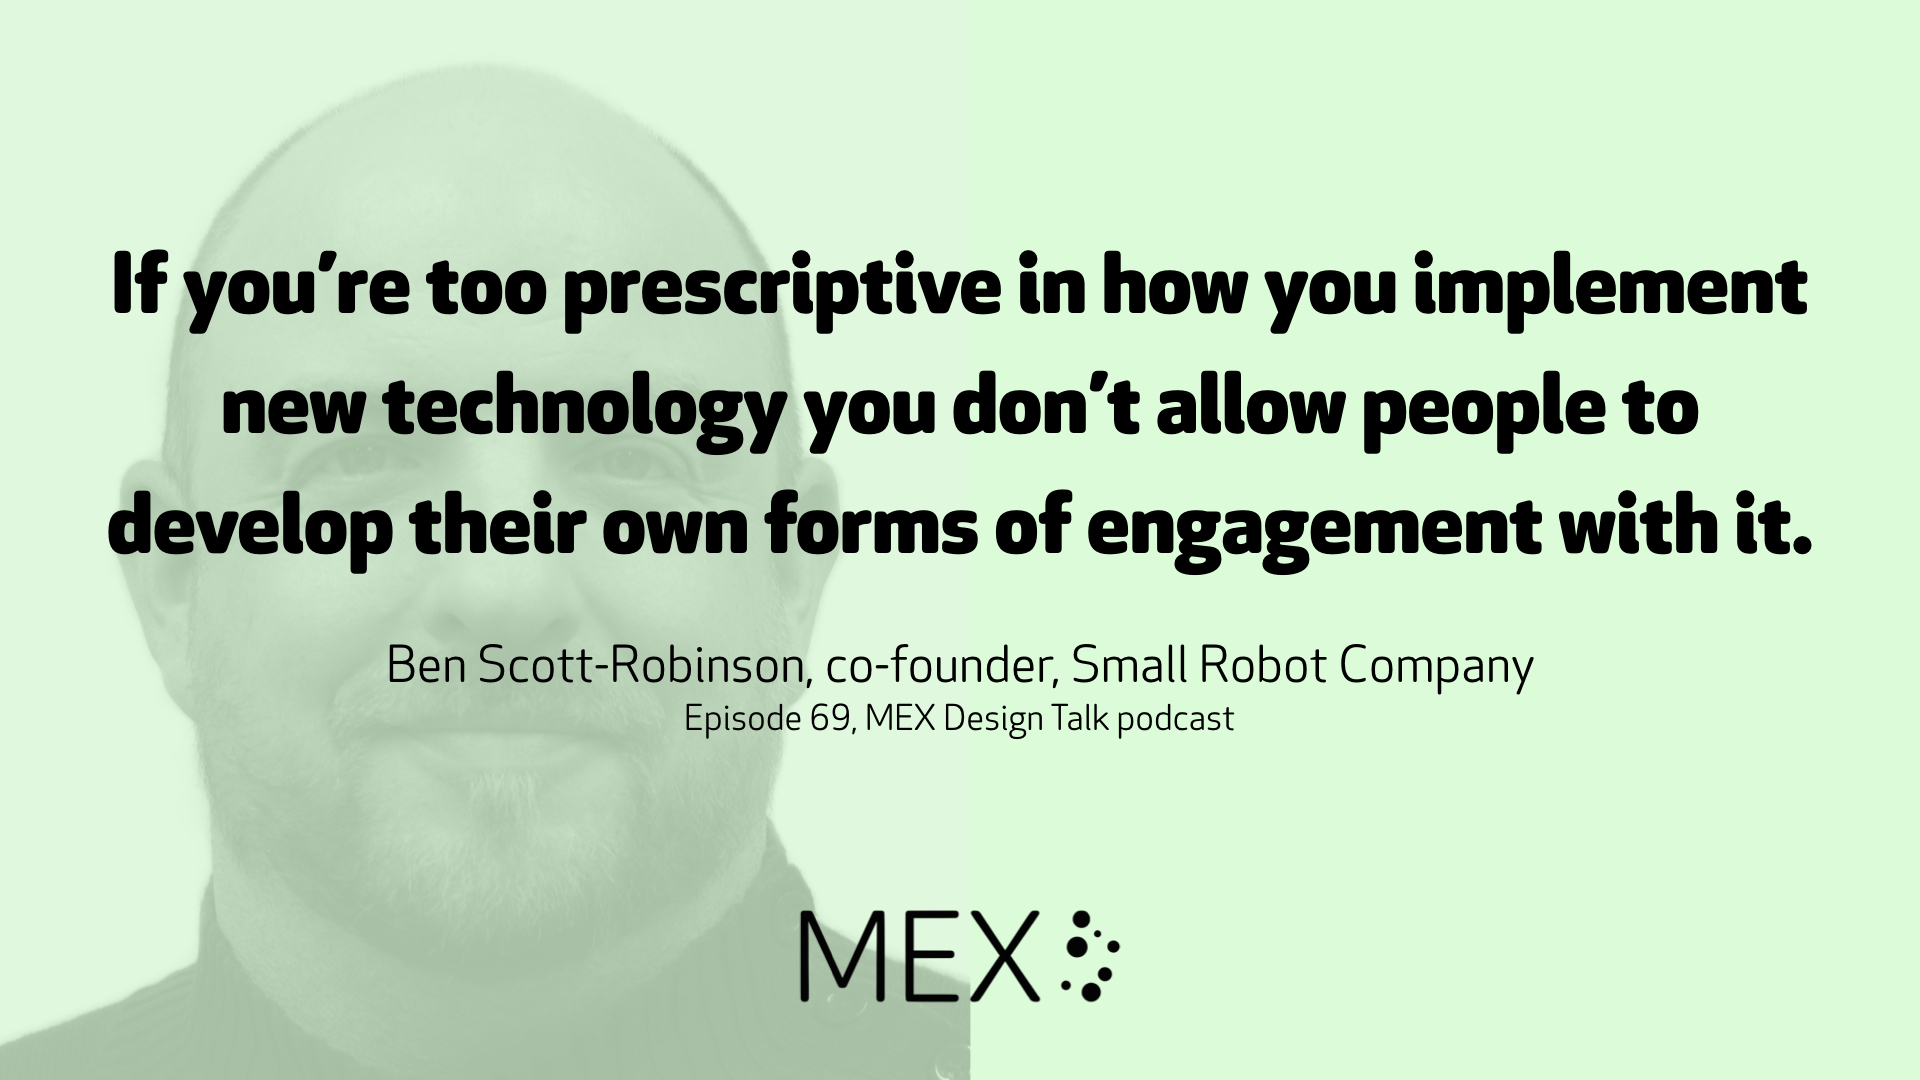 If you're too prescriptive in how you implement new technology you don't allow people to develop their own forms of engagement with it. Ben Scott-Robinson, co-founder, Small Robot Company Episode 69, MEX Design Talk podcast